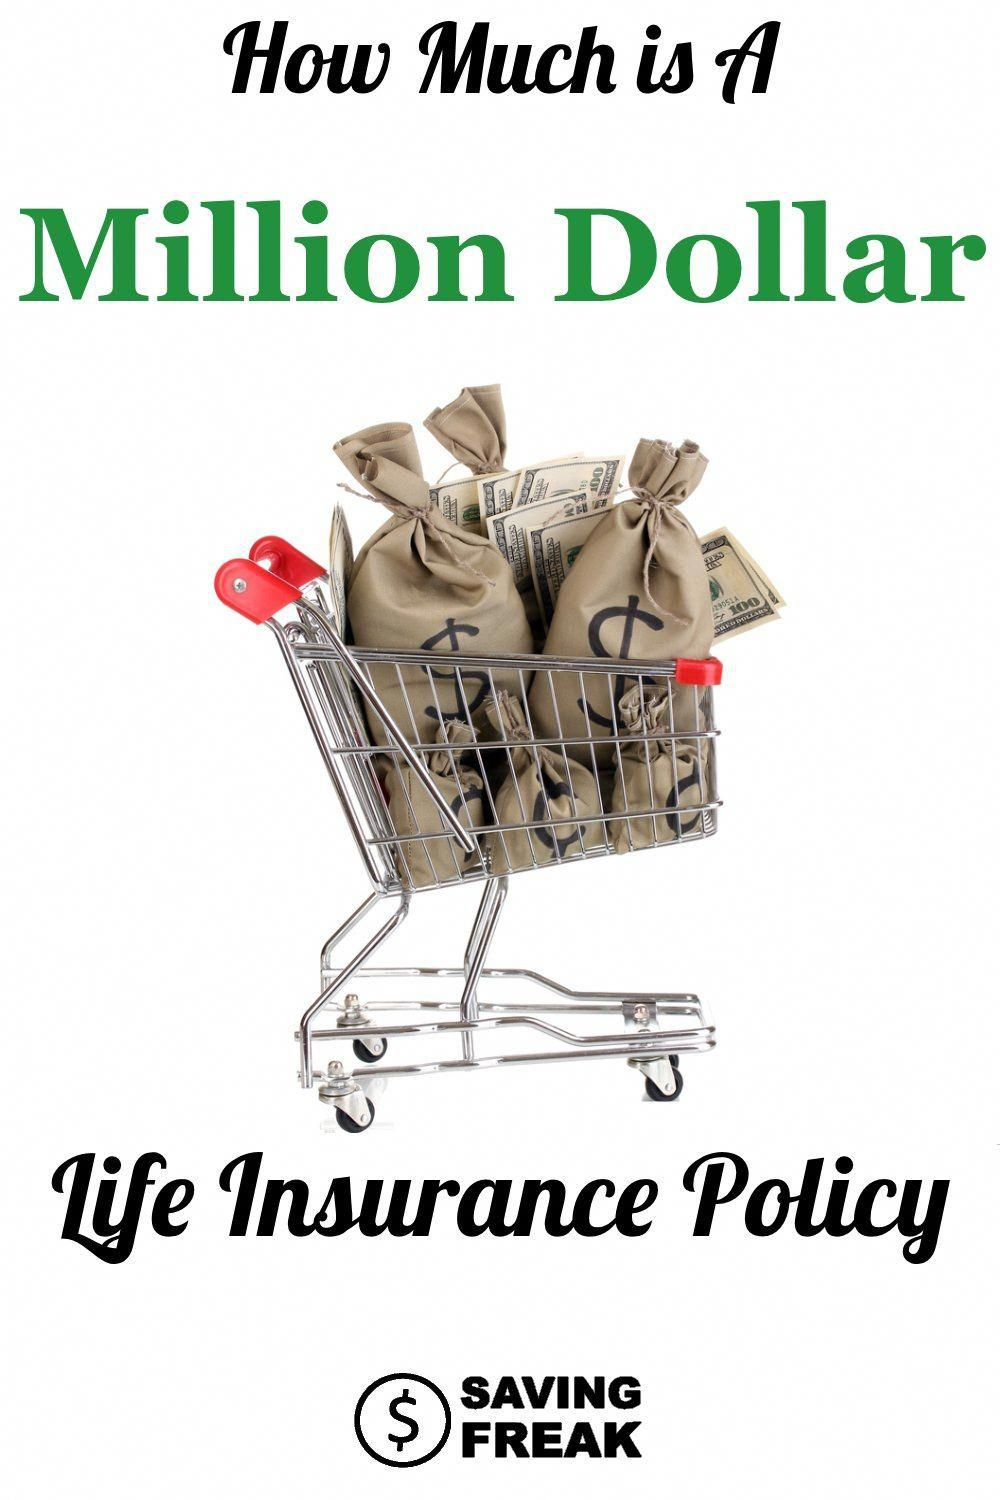 How Much Does A One Million Dollar Life Insurance Policy Cost